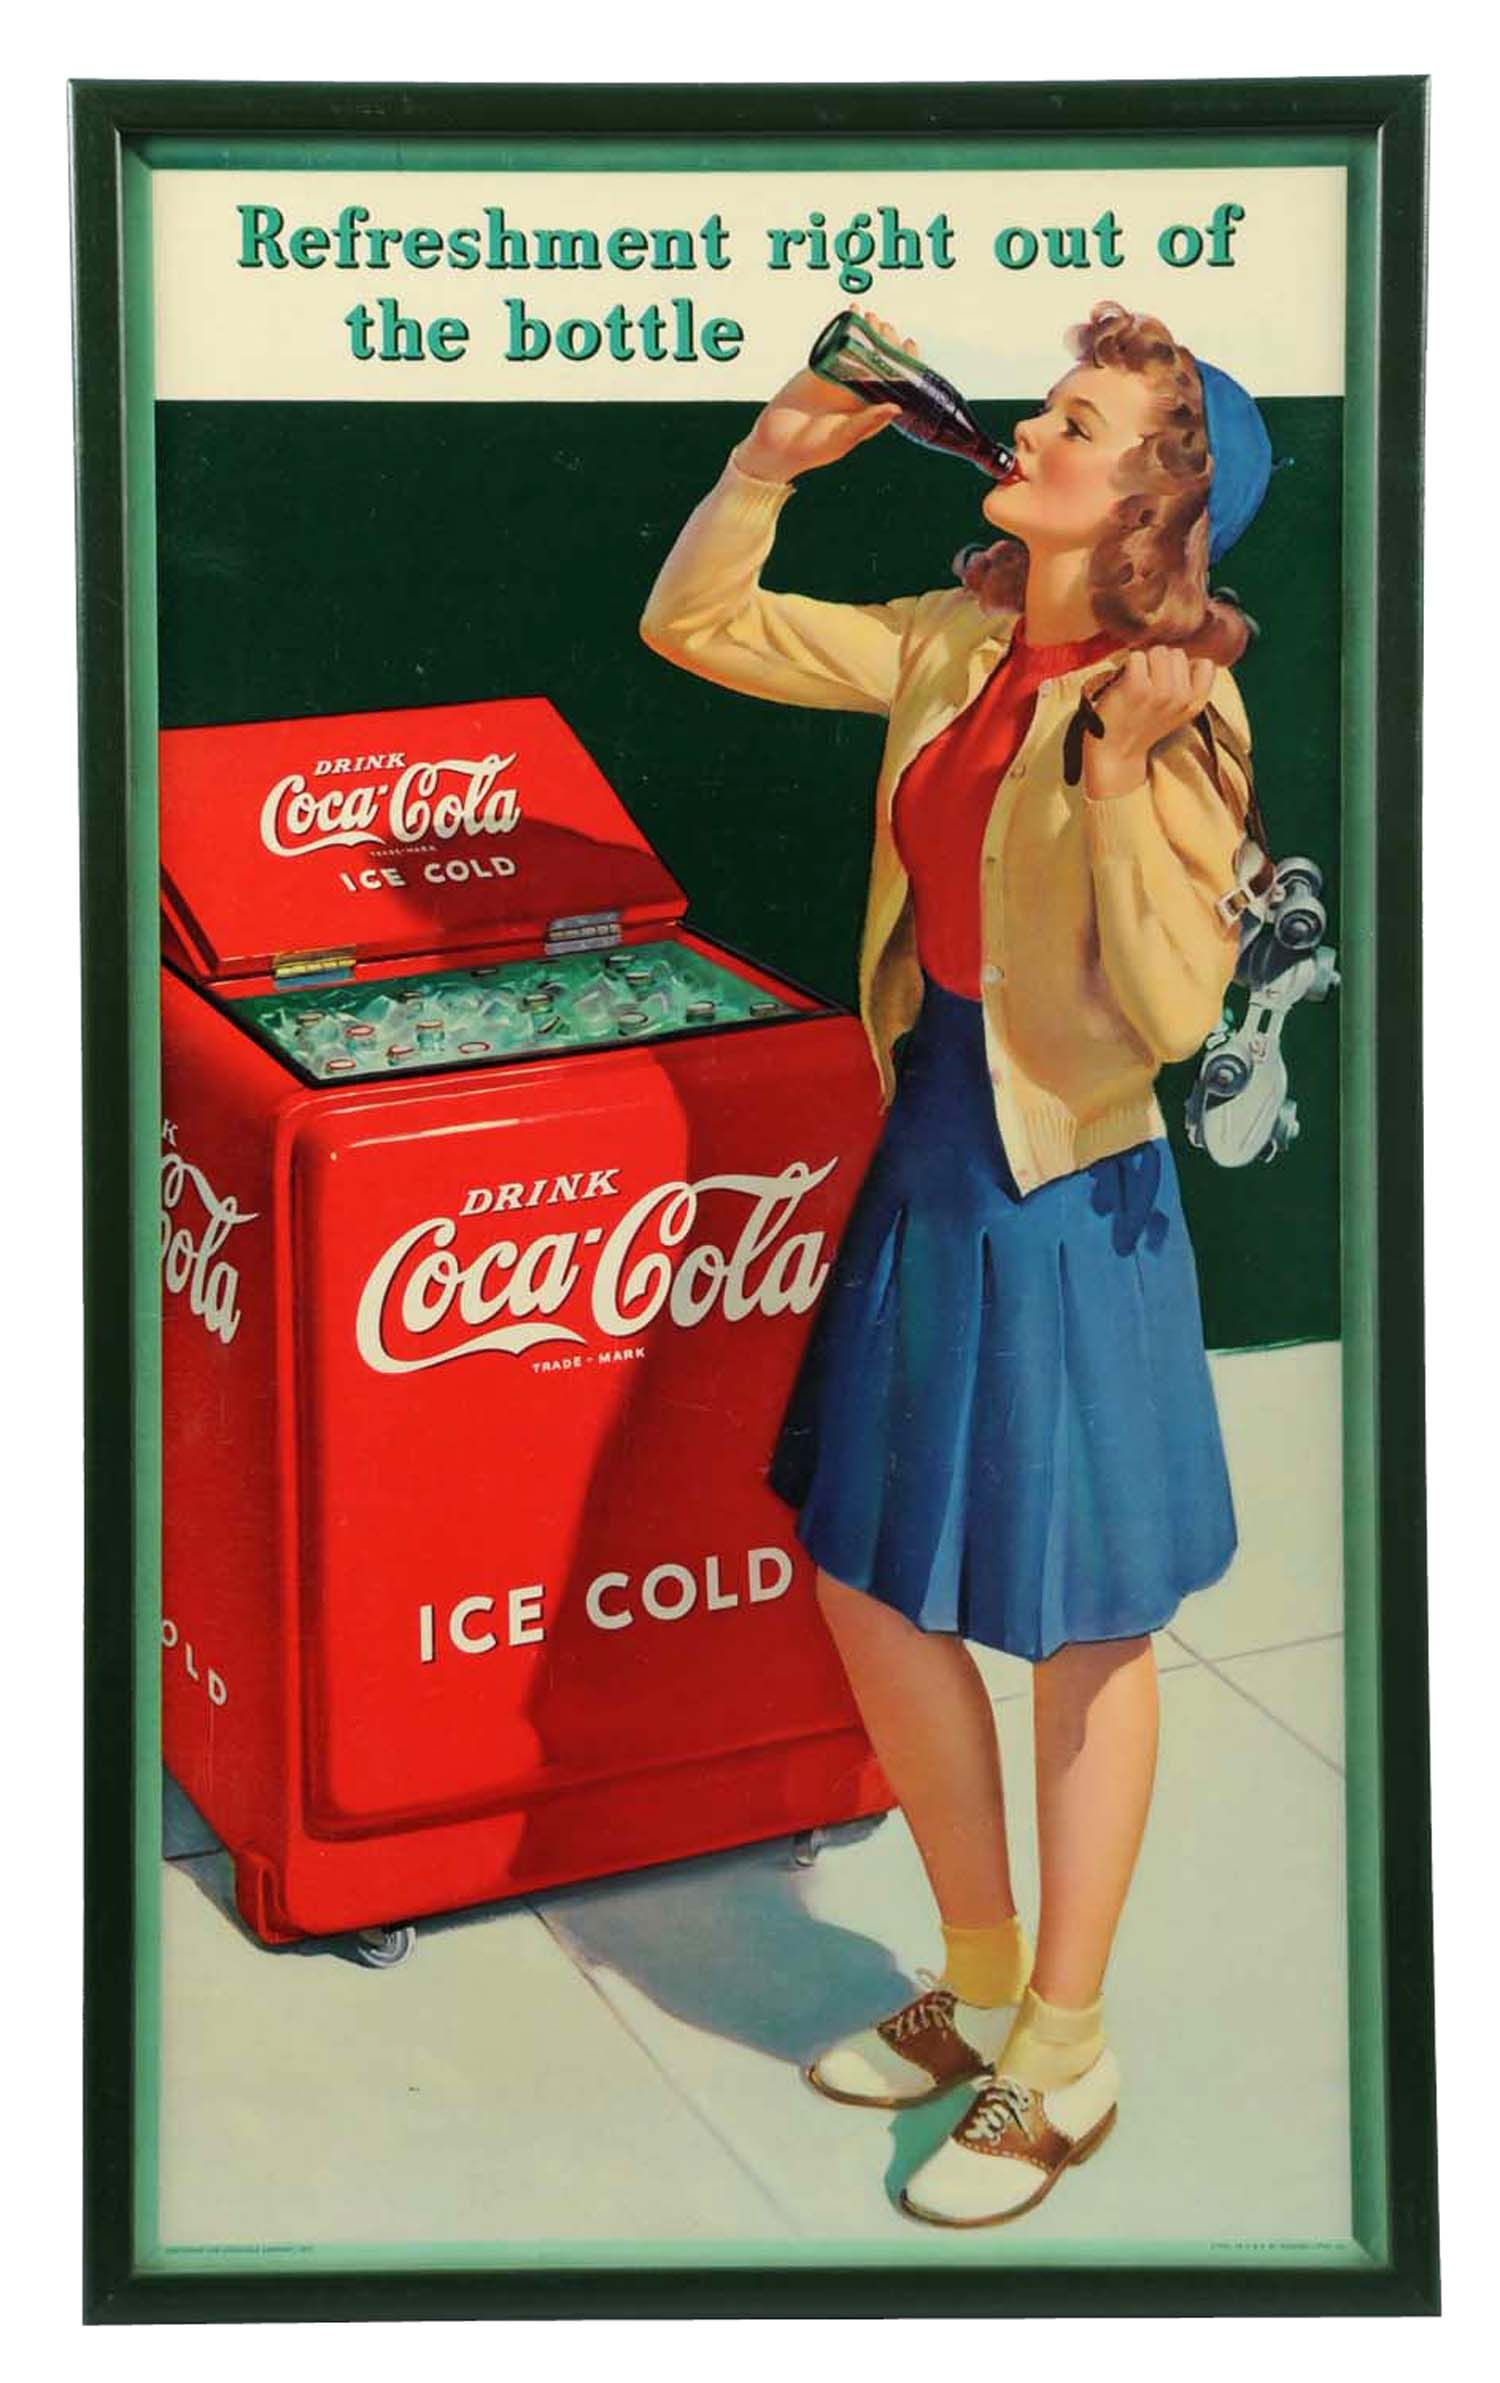 "March 30th Auction. 1941 Coca-Cola Small Vertical Poster. Framed under glass. Great example. Framed: 28-1/4"" x 17"". #CocaCola #Poster #RollerSkates #MorphyAuctions"